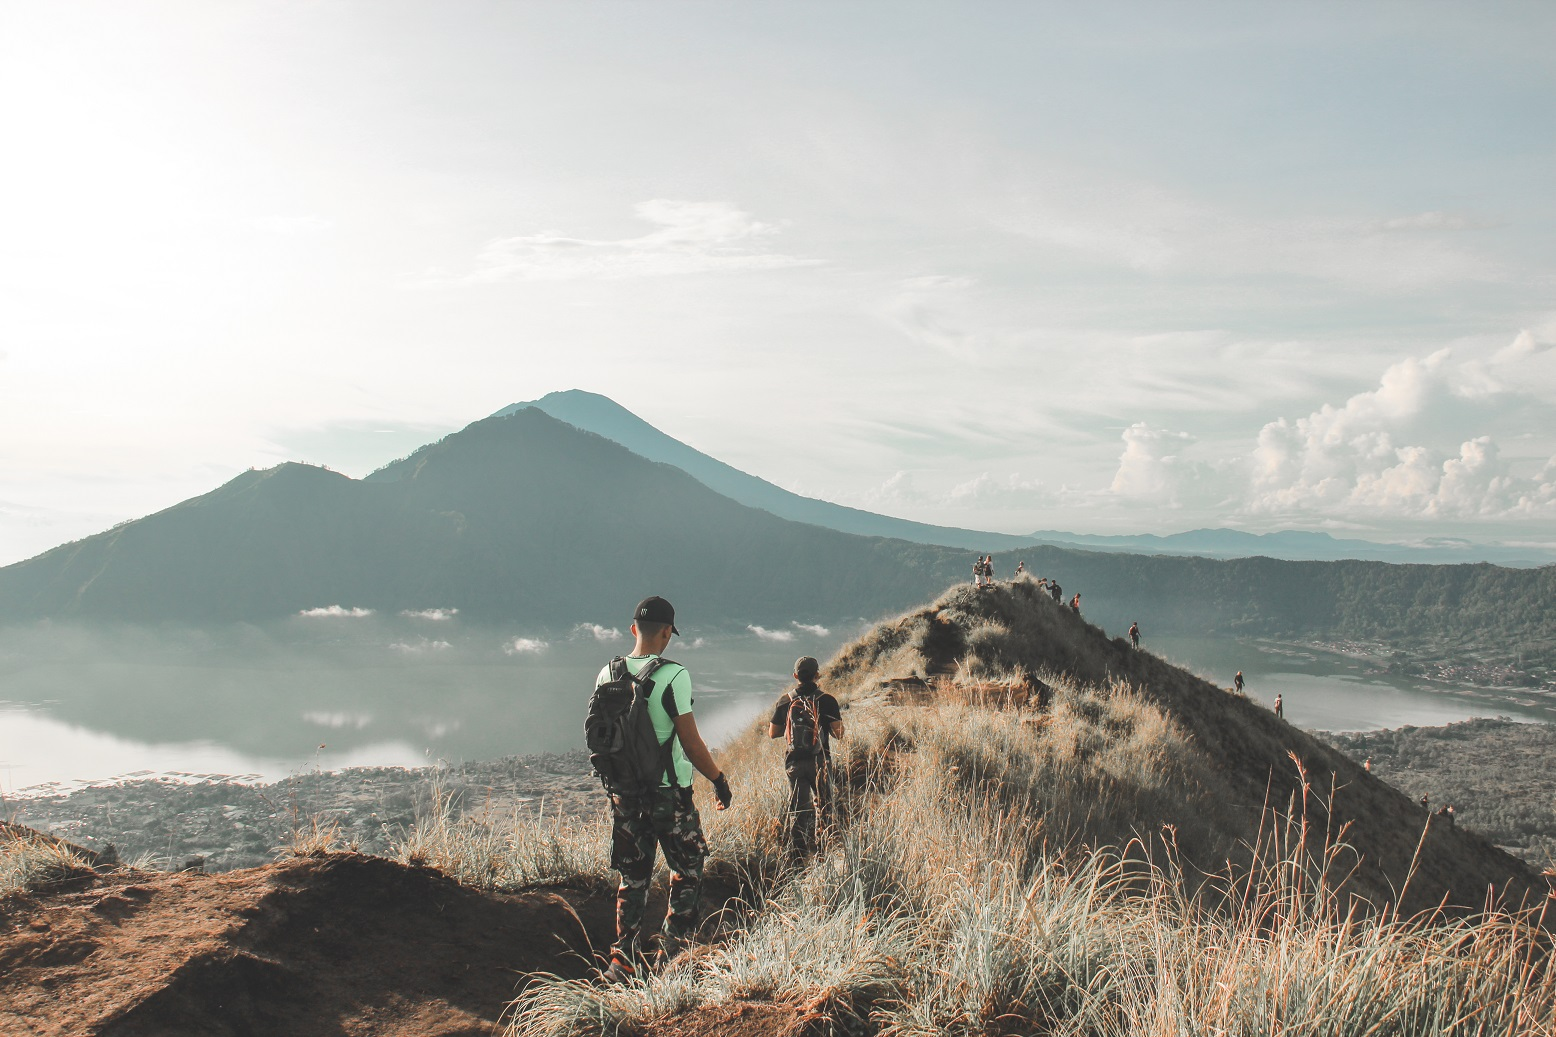 Route to Mount Batur Starting Point or Basecamp